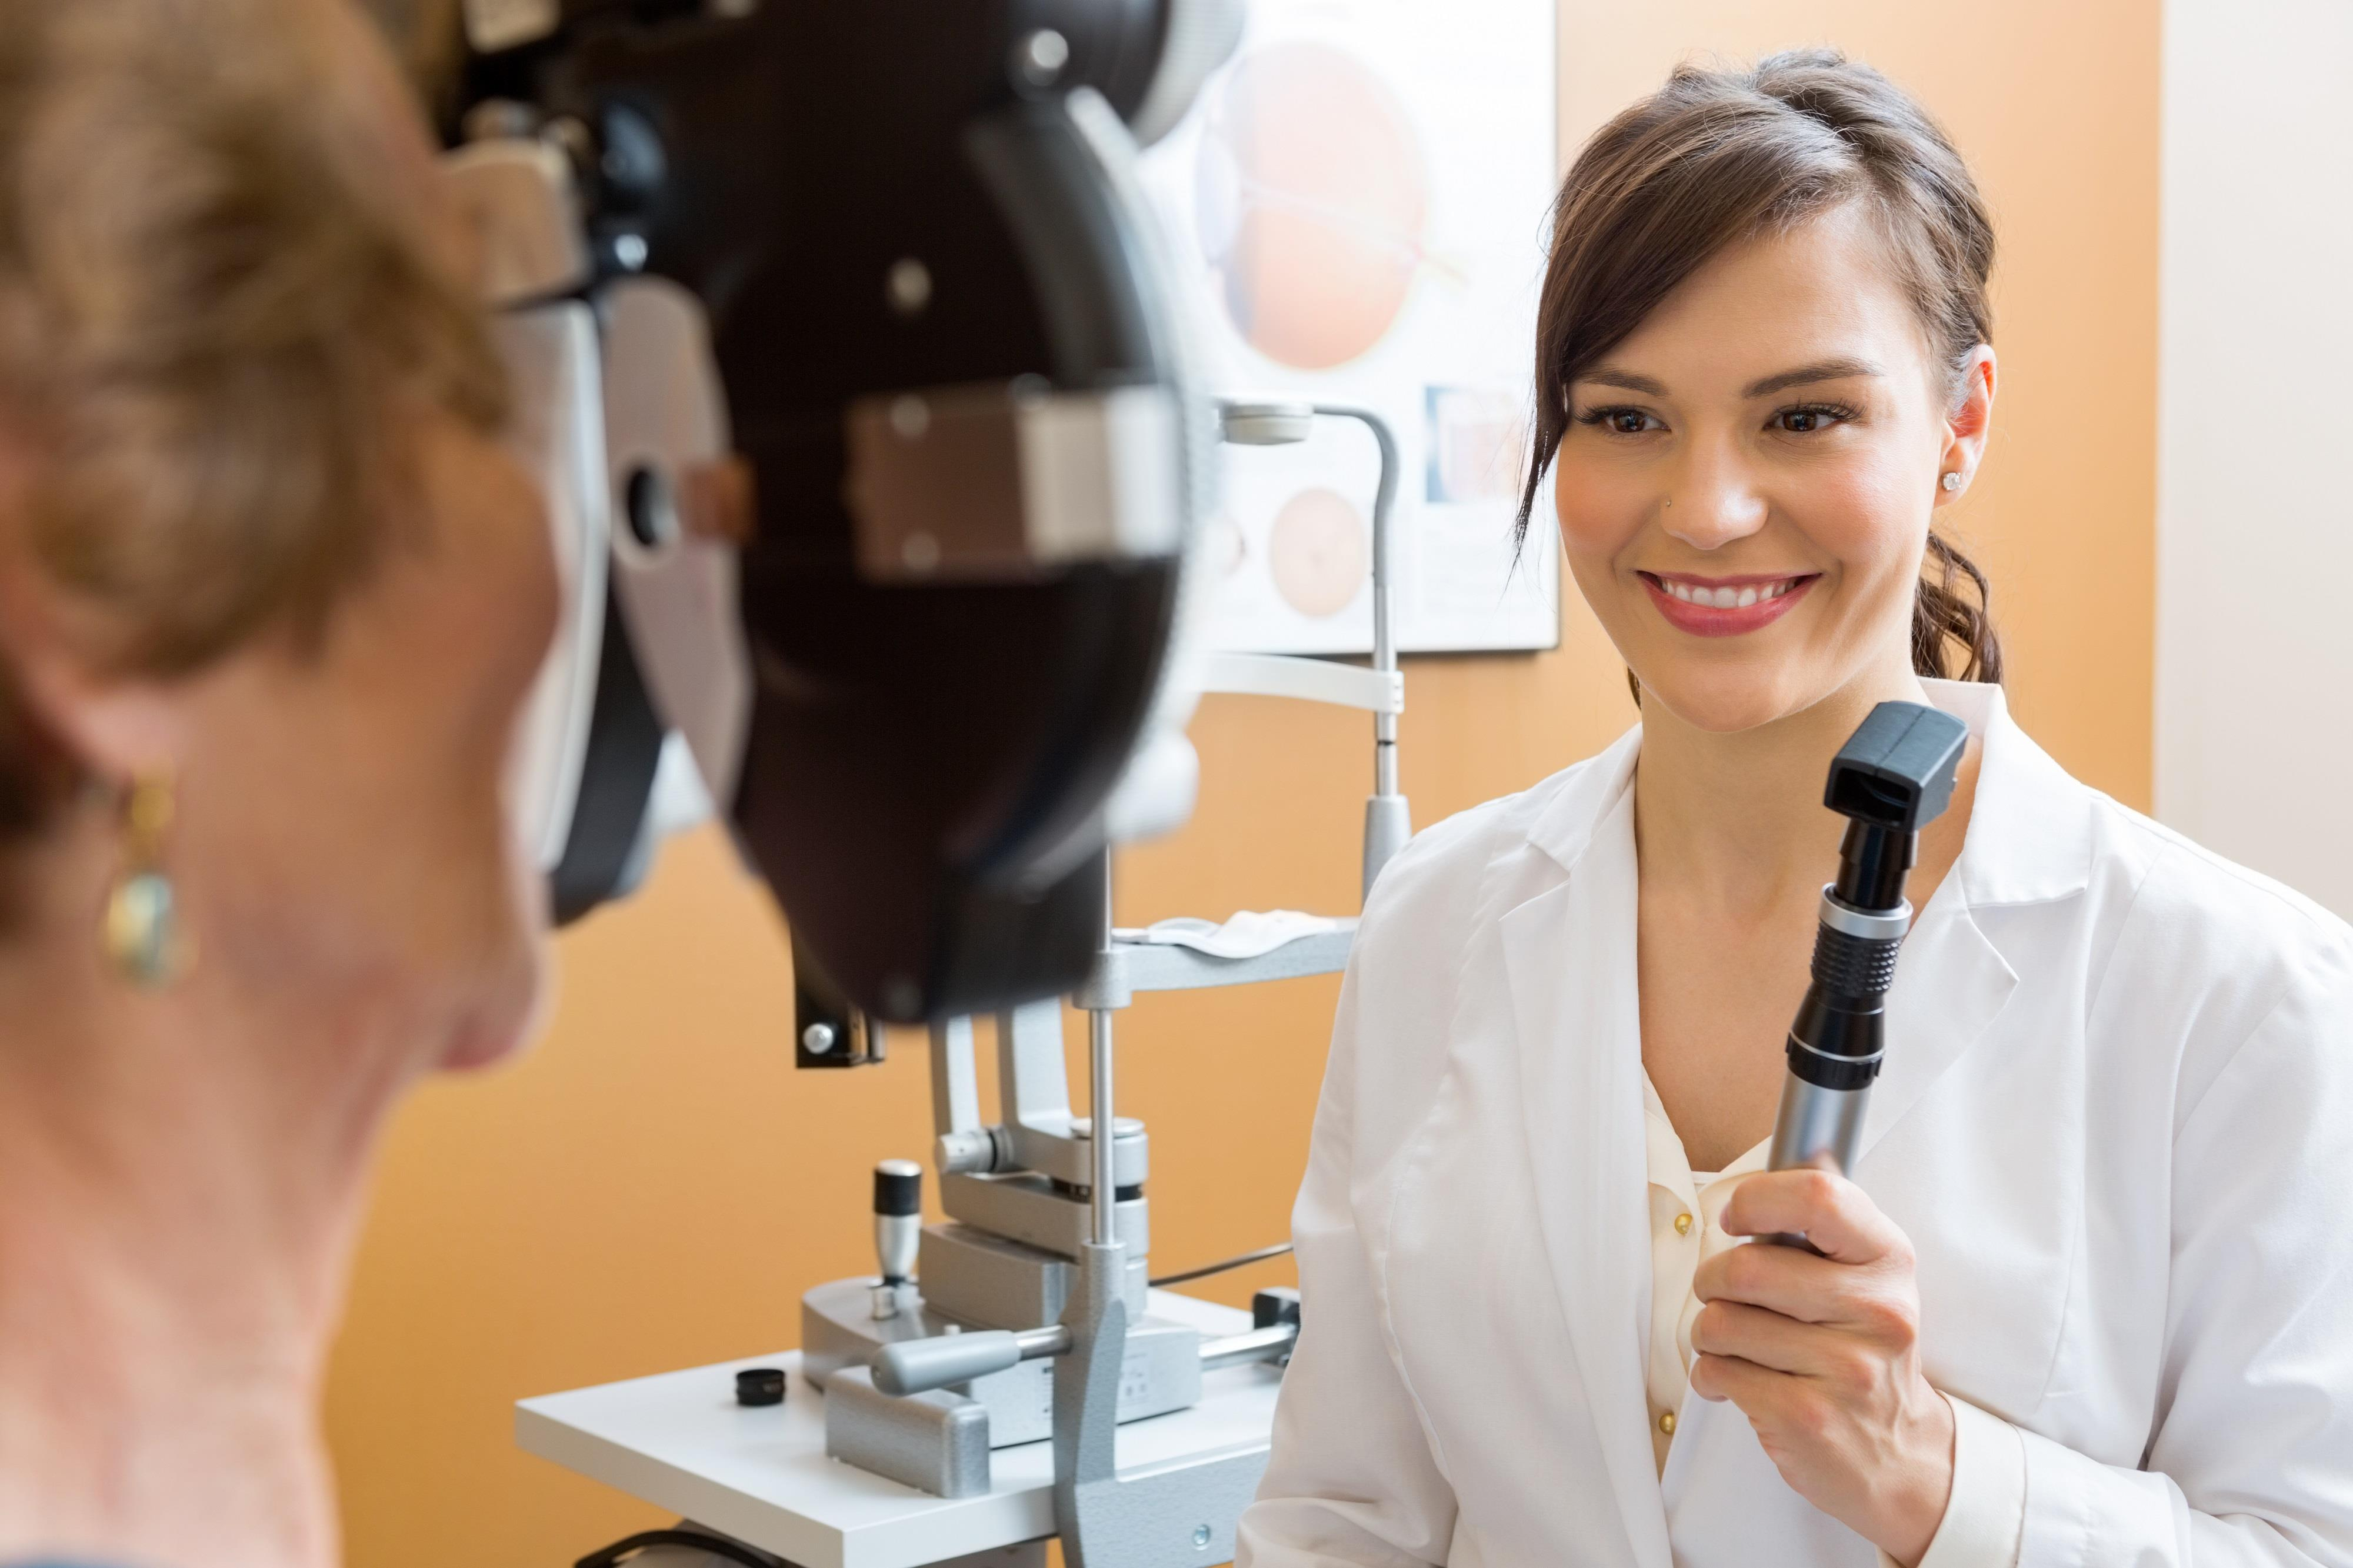 optometrist preparing to test a patient's eyesight